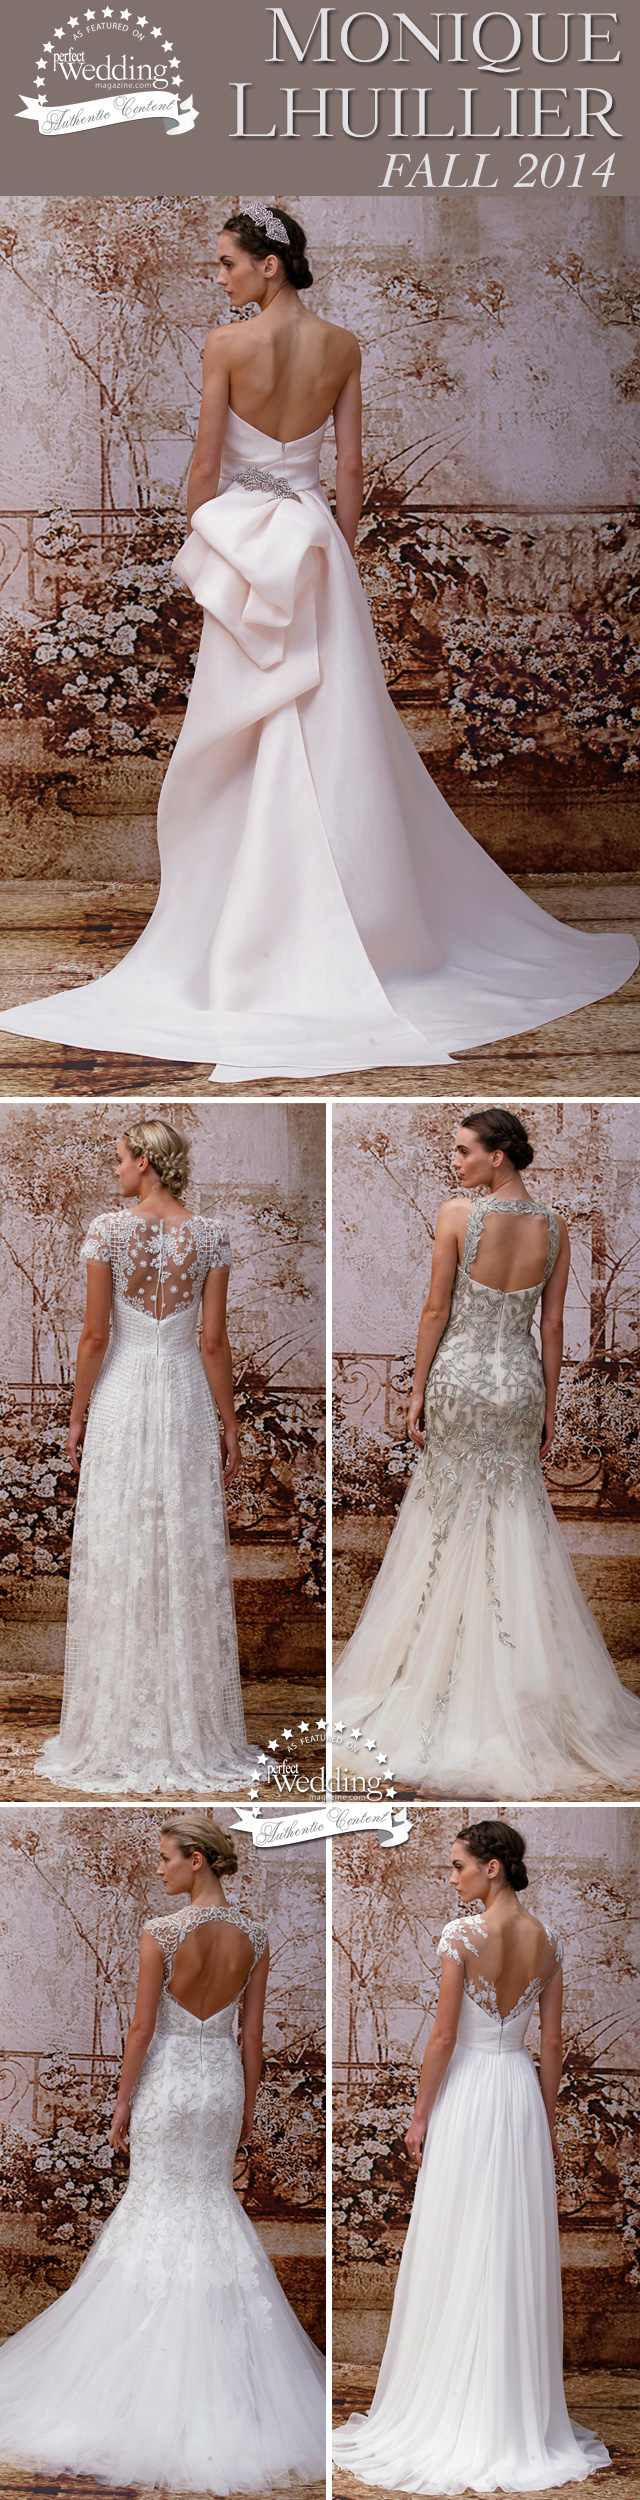 Monique Lhuillier, Fall 2014 Bridal, Fashion, Perfect Wedding magazine, Perfect Wedding, New York Bridal Fashion Week